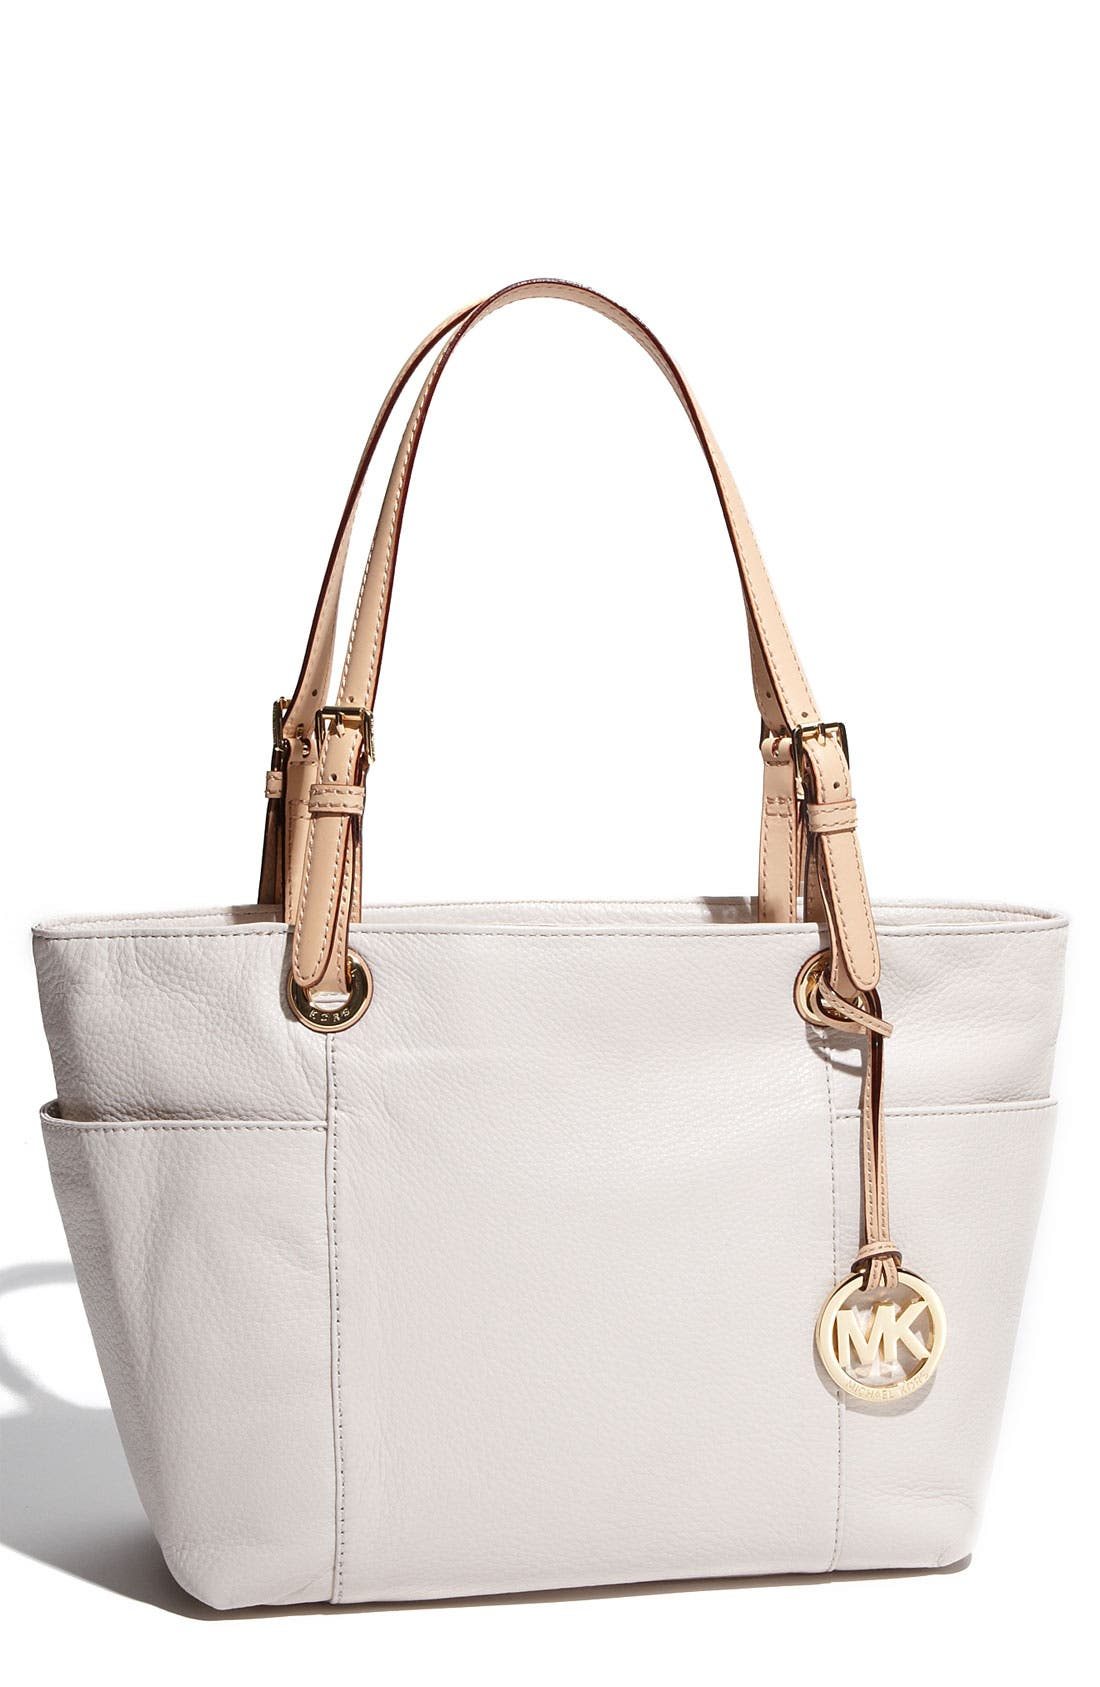 Alternate Image 1 Selected - MICHAEL Michael Kors 'Jet Set' Tote, Medium